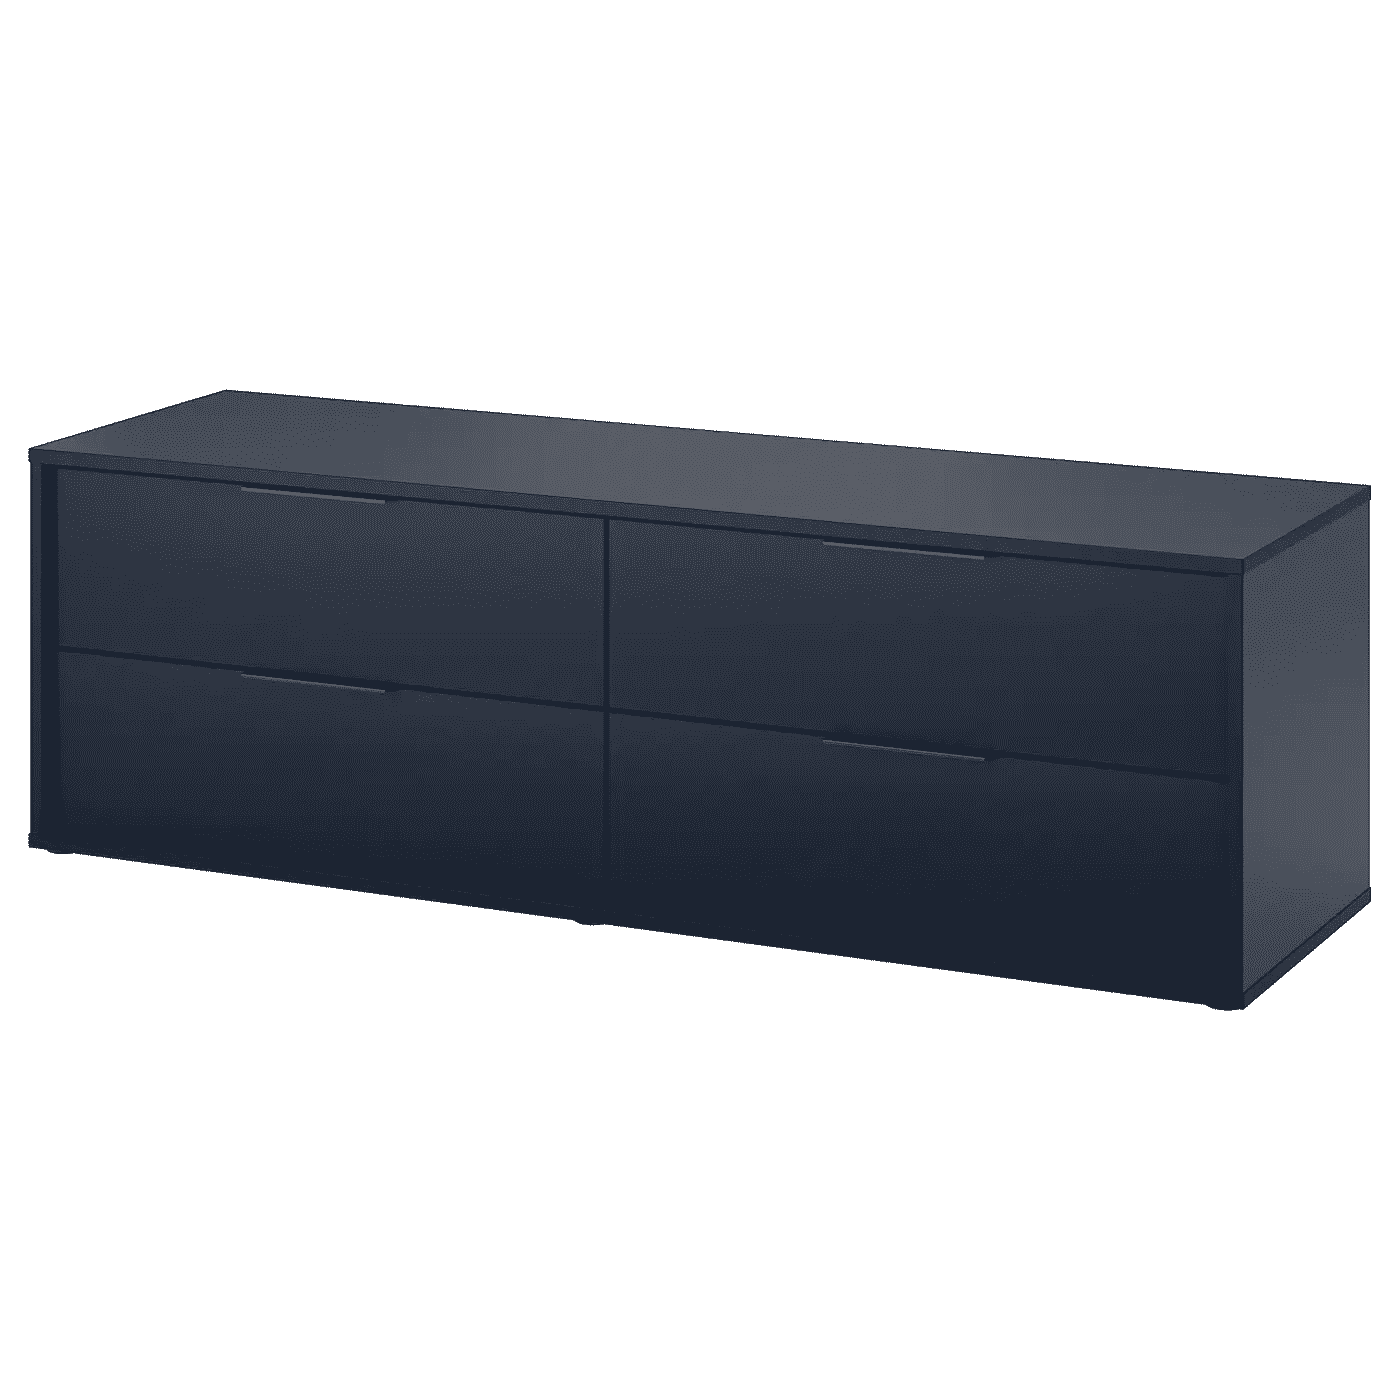 Nordmela 4-Drawer Dresser